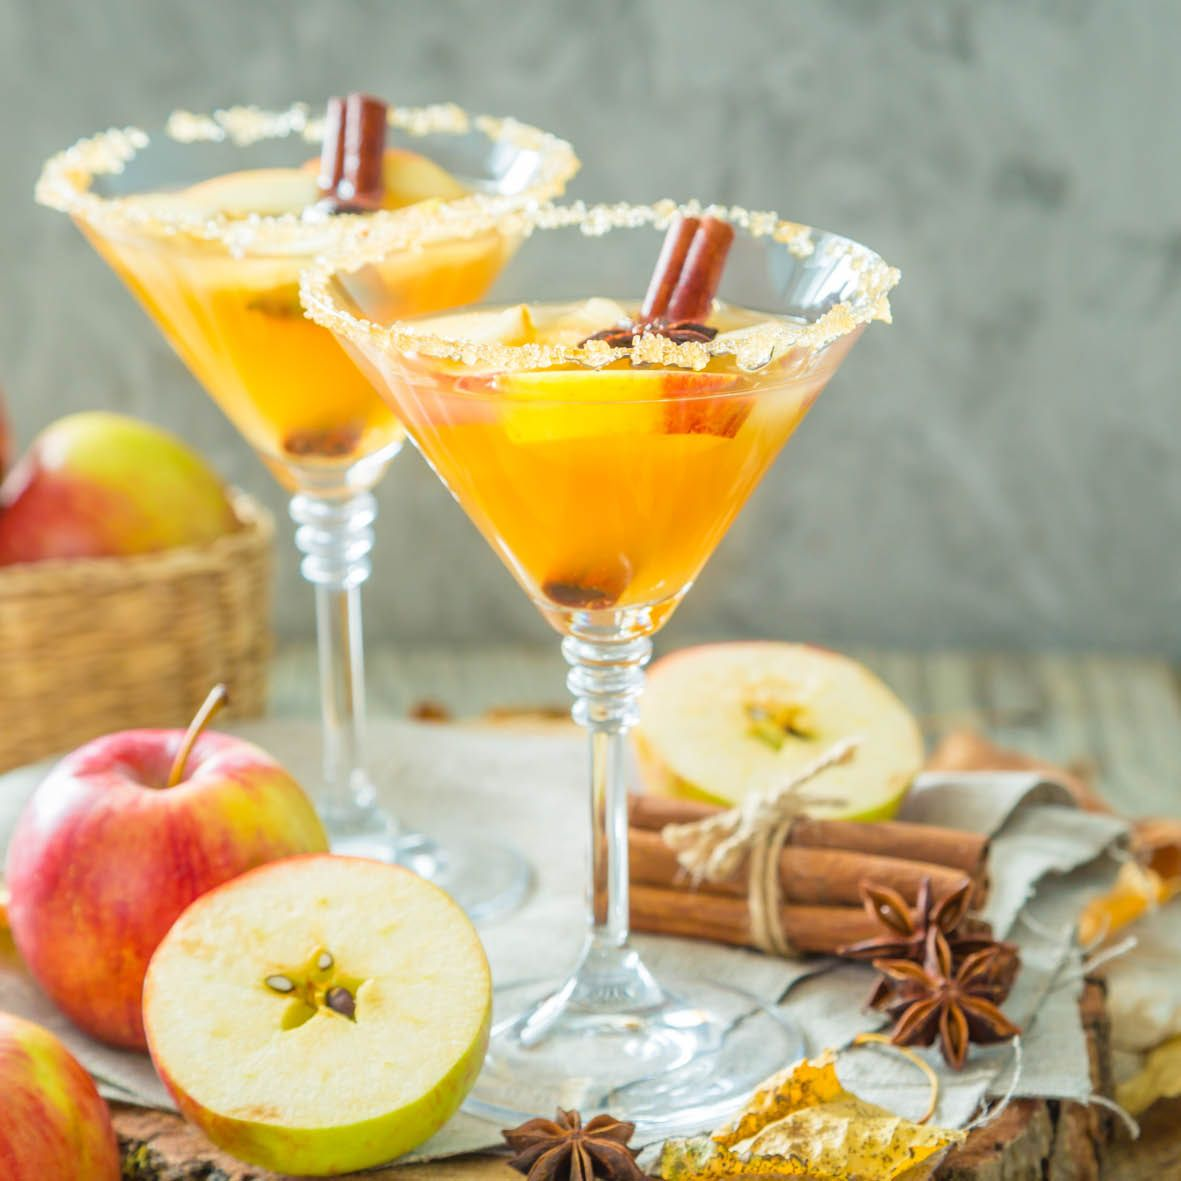 Peach_Cinnamon_Cocktail.jpg